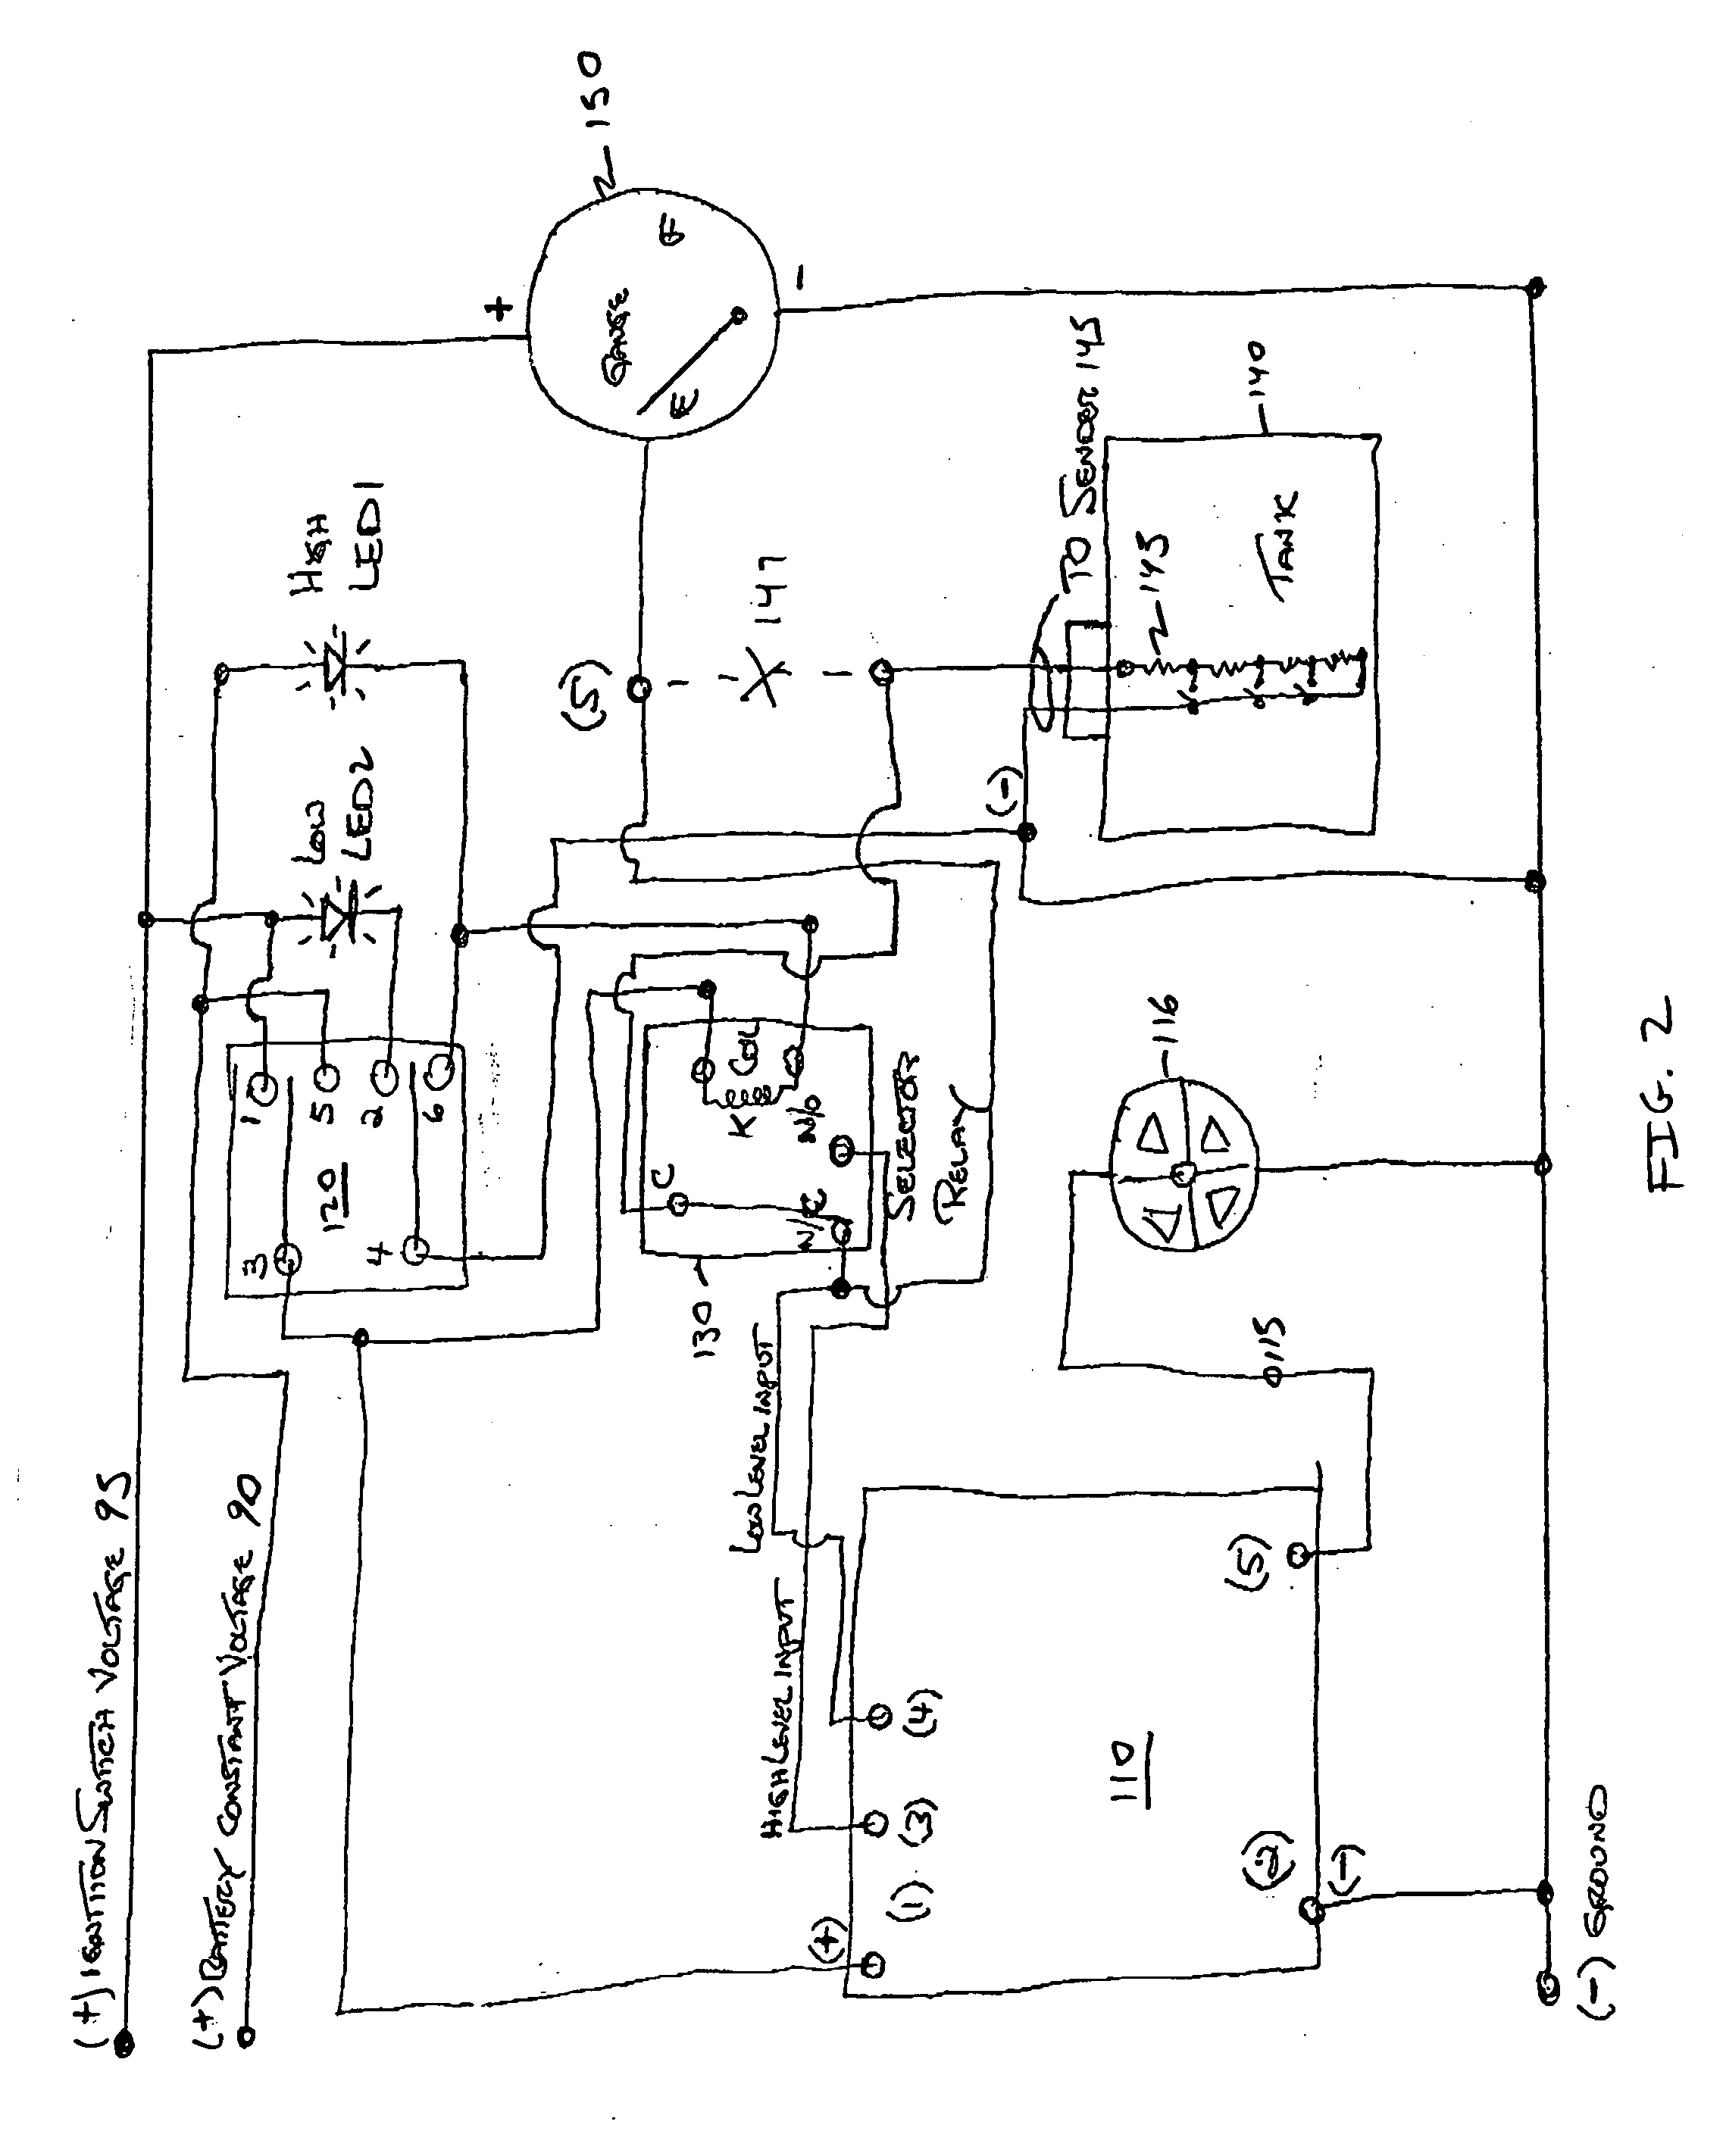 wiring diagram for a well holding tank